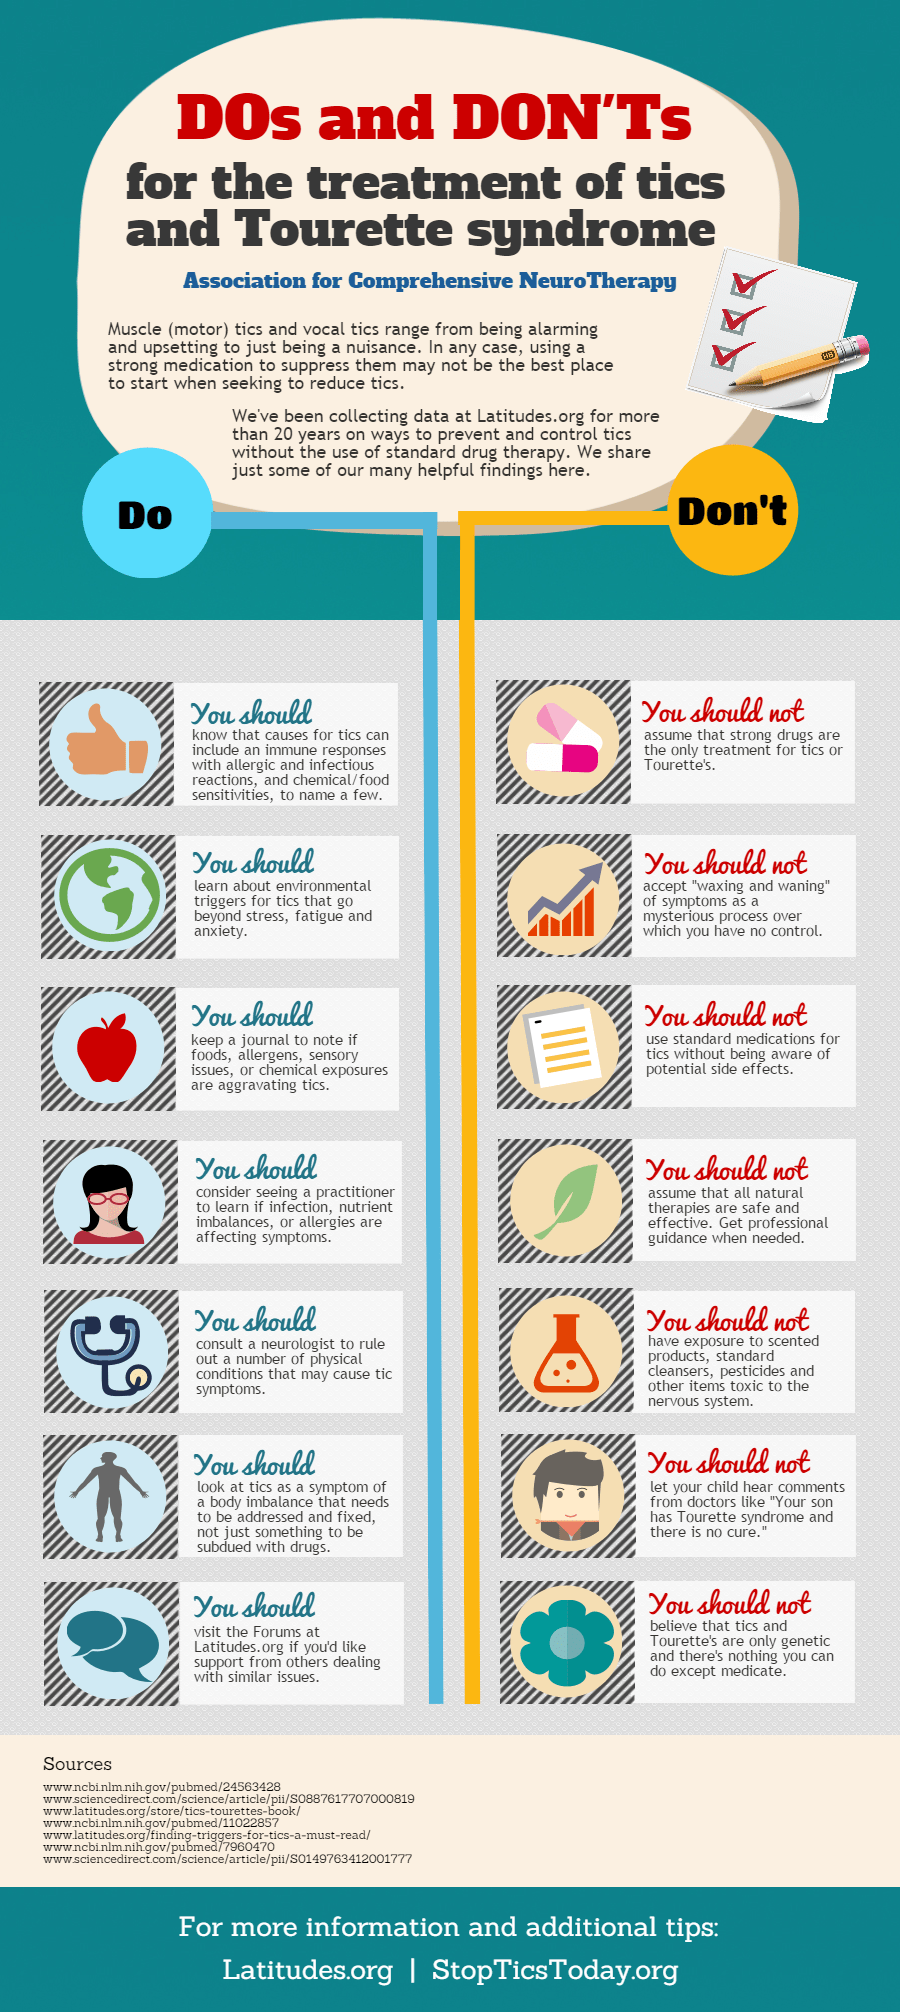 Dos and Dont's for Treatment of Tics and Tourette Syndrome Infographic